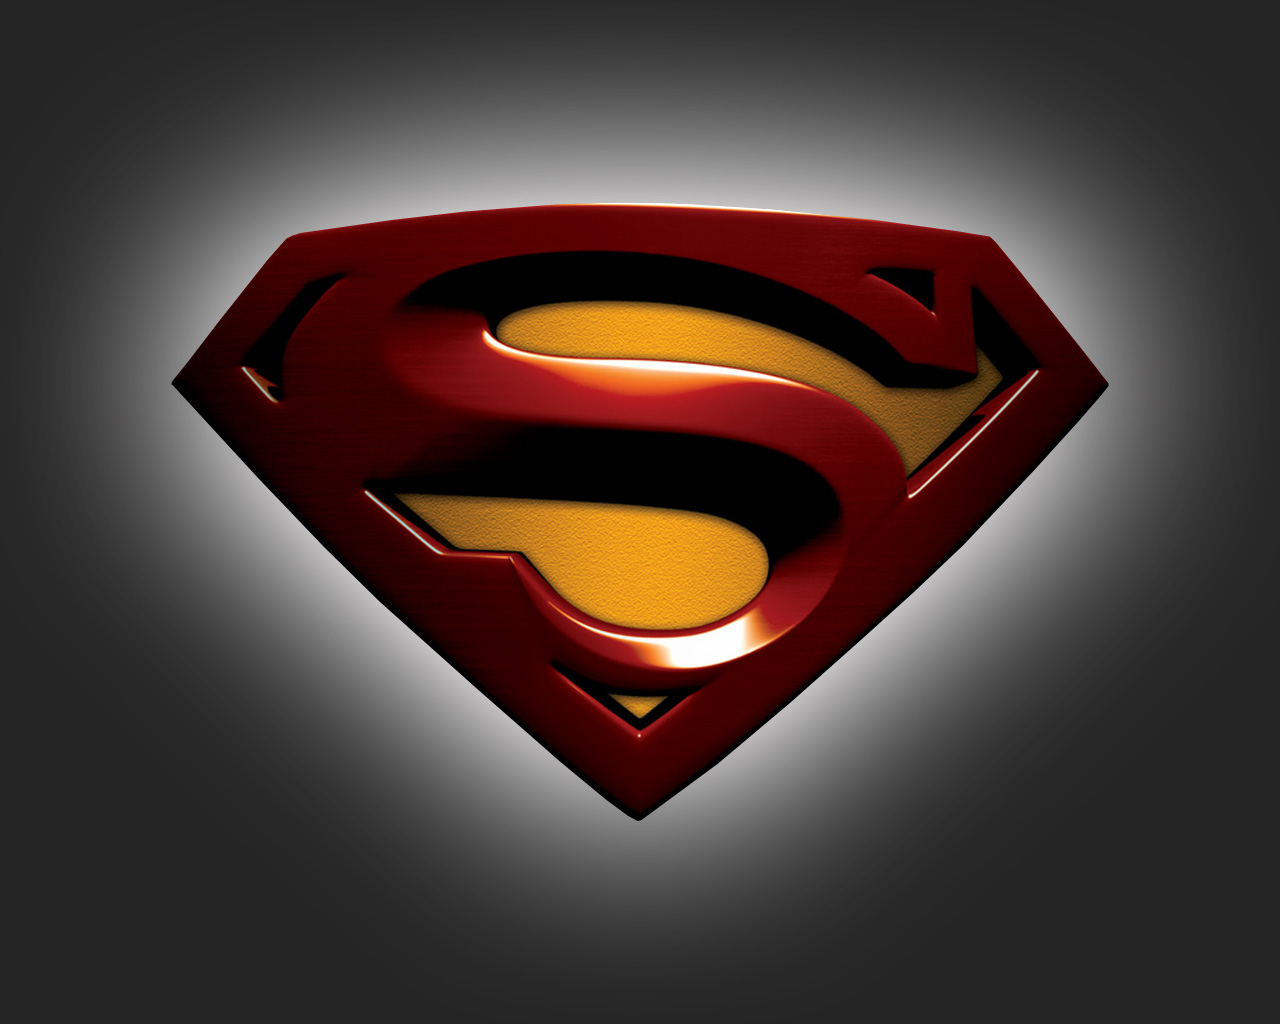 Hd Wallpaper Superman Download Wallpaper DaWallpaperz 1280x1024